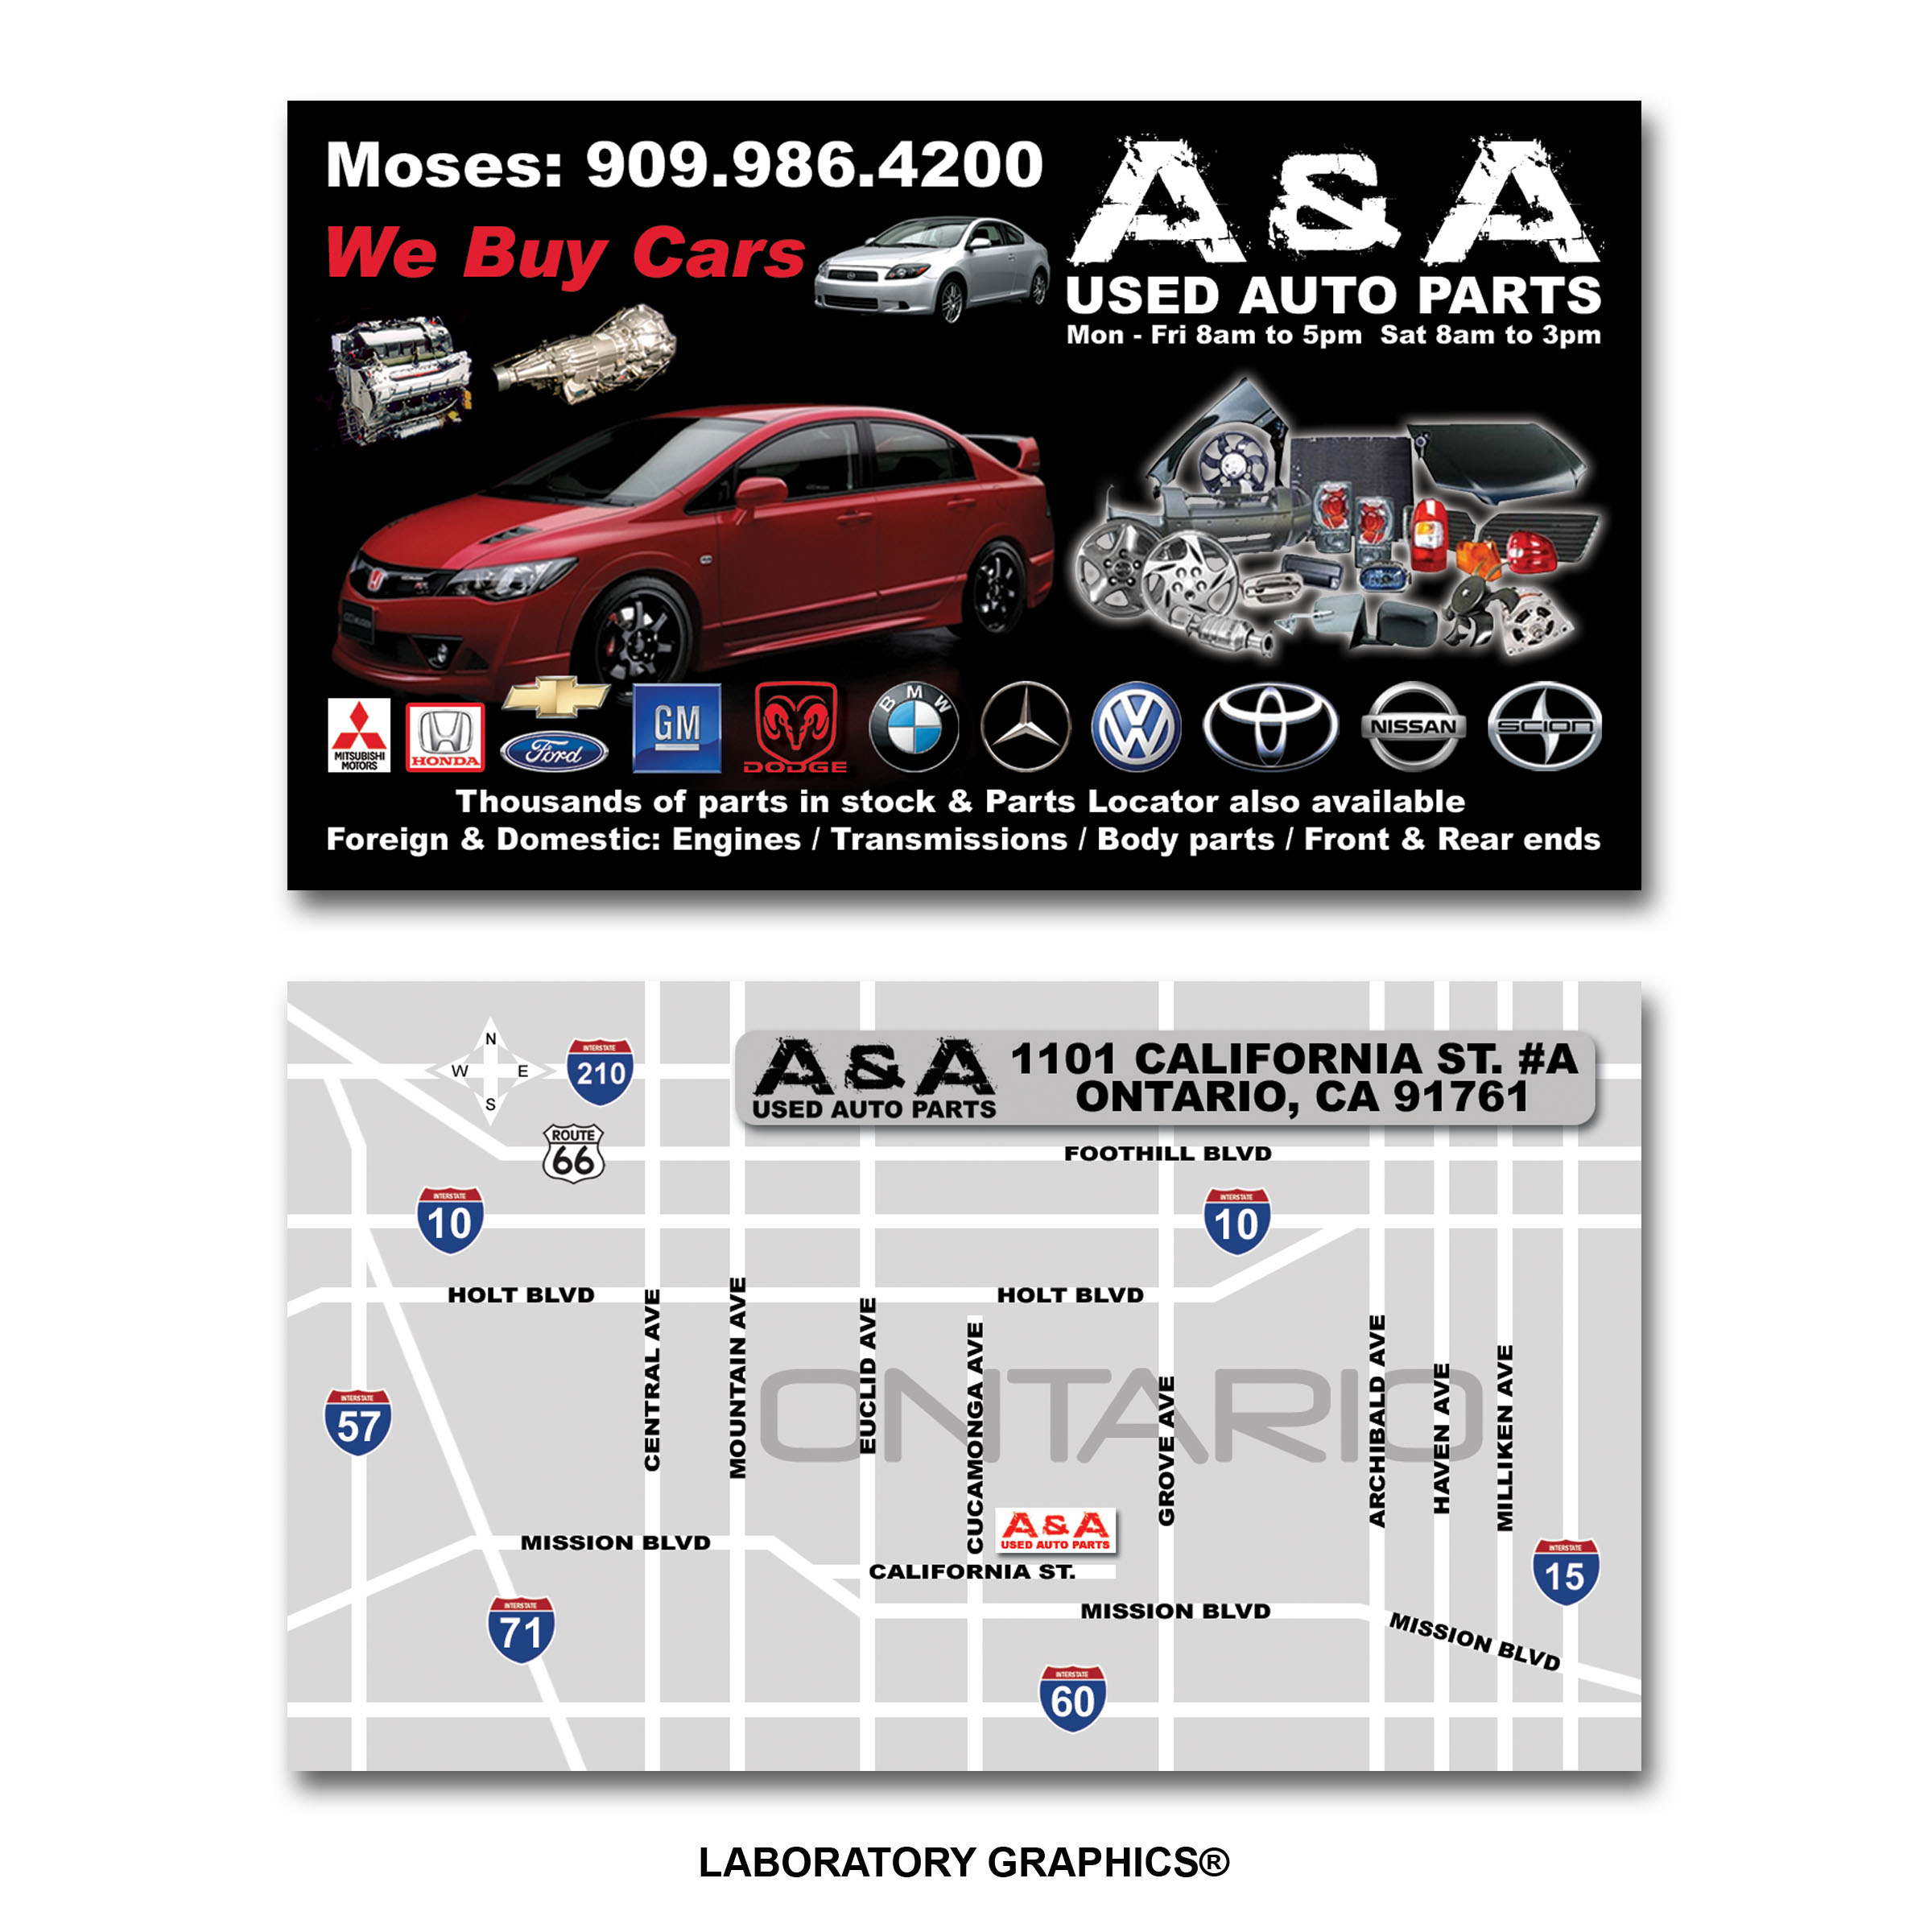 Business cards by johnny mar at coroflotcom for Auto parts business cards